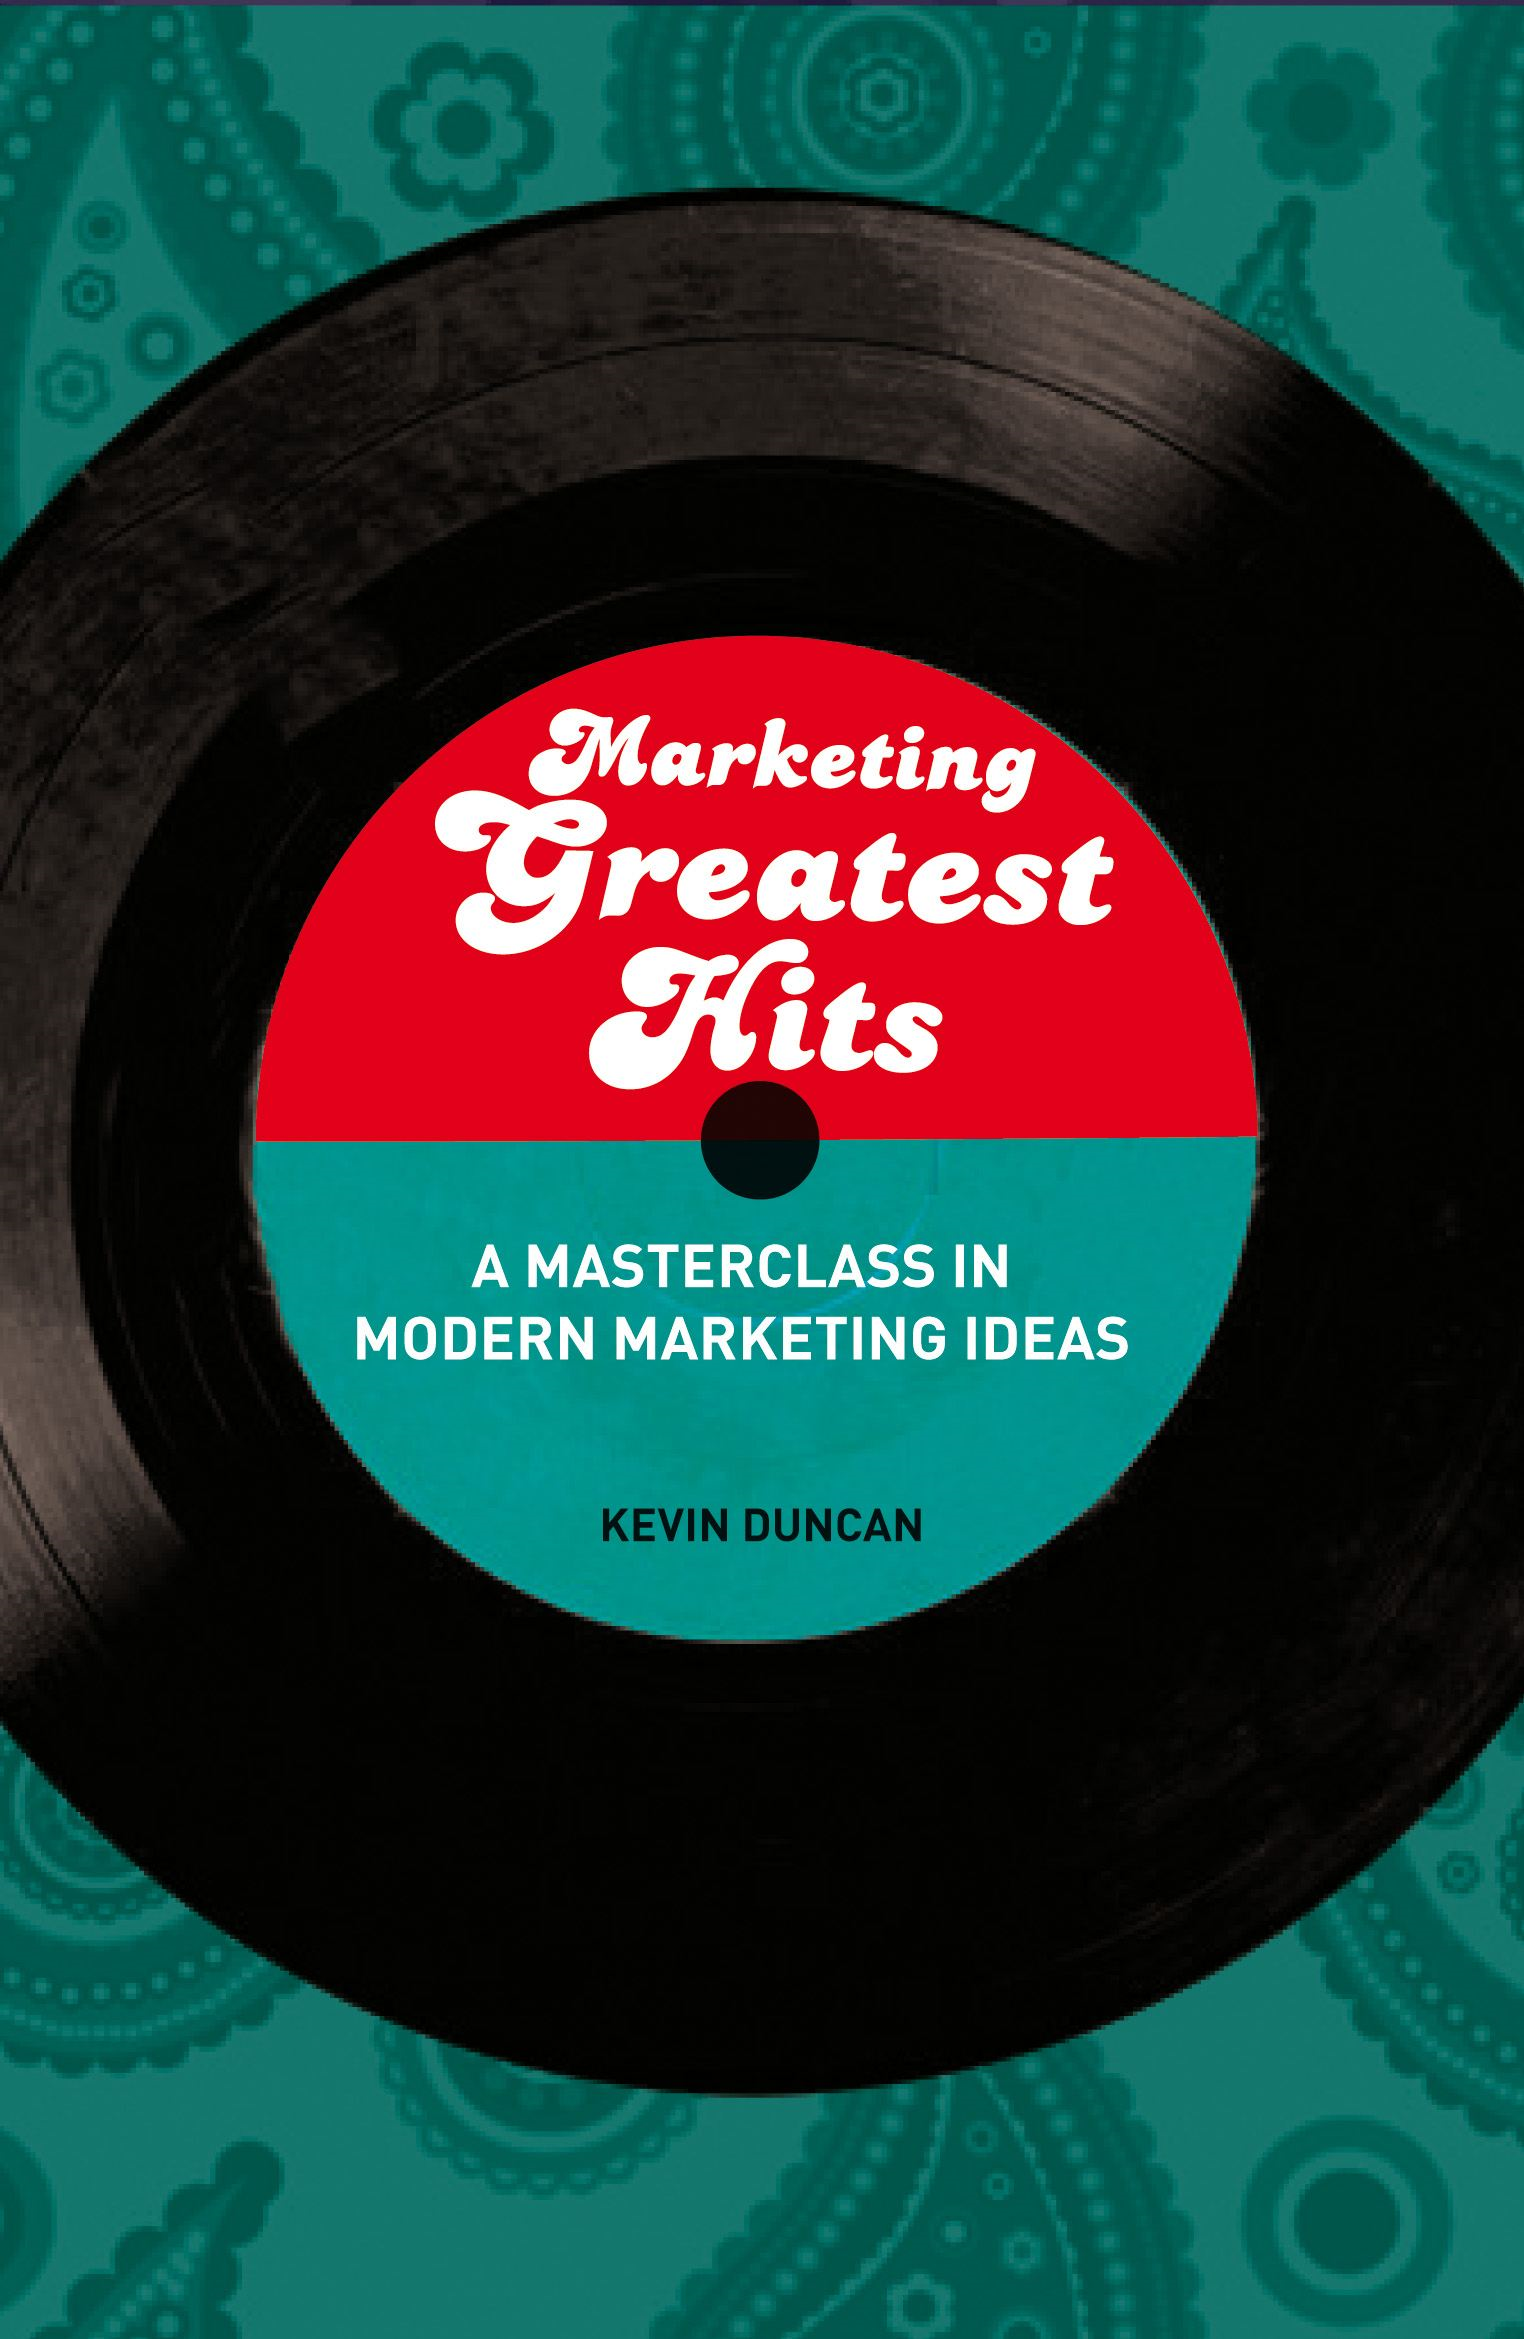 Marketing Greatest Hits: A Masterclass in Modern Marketing Ideas By: Kevin Duncan